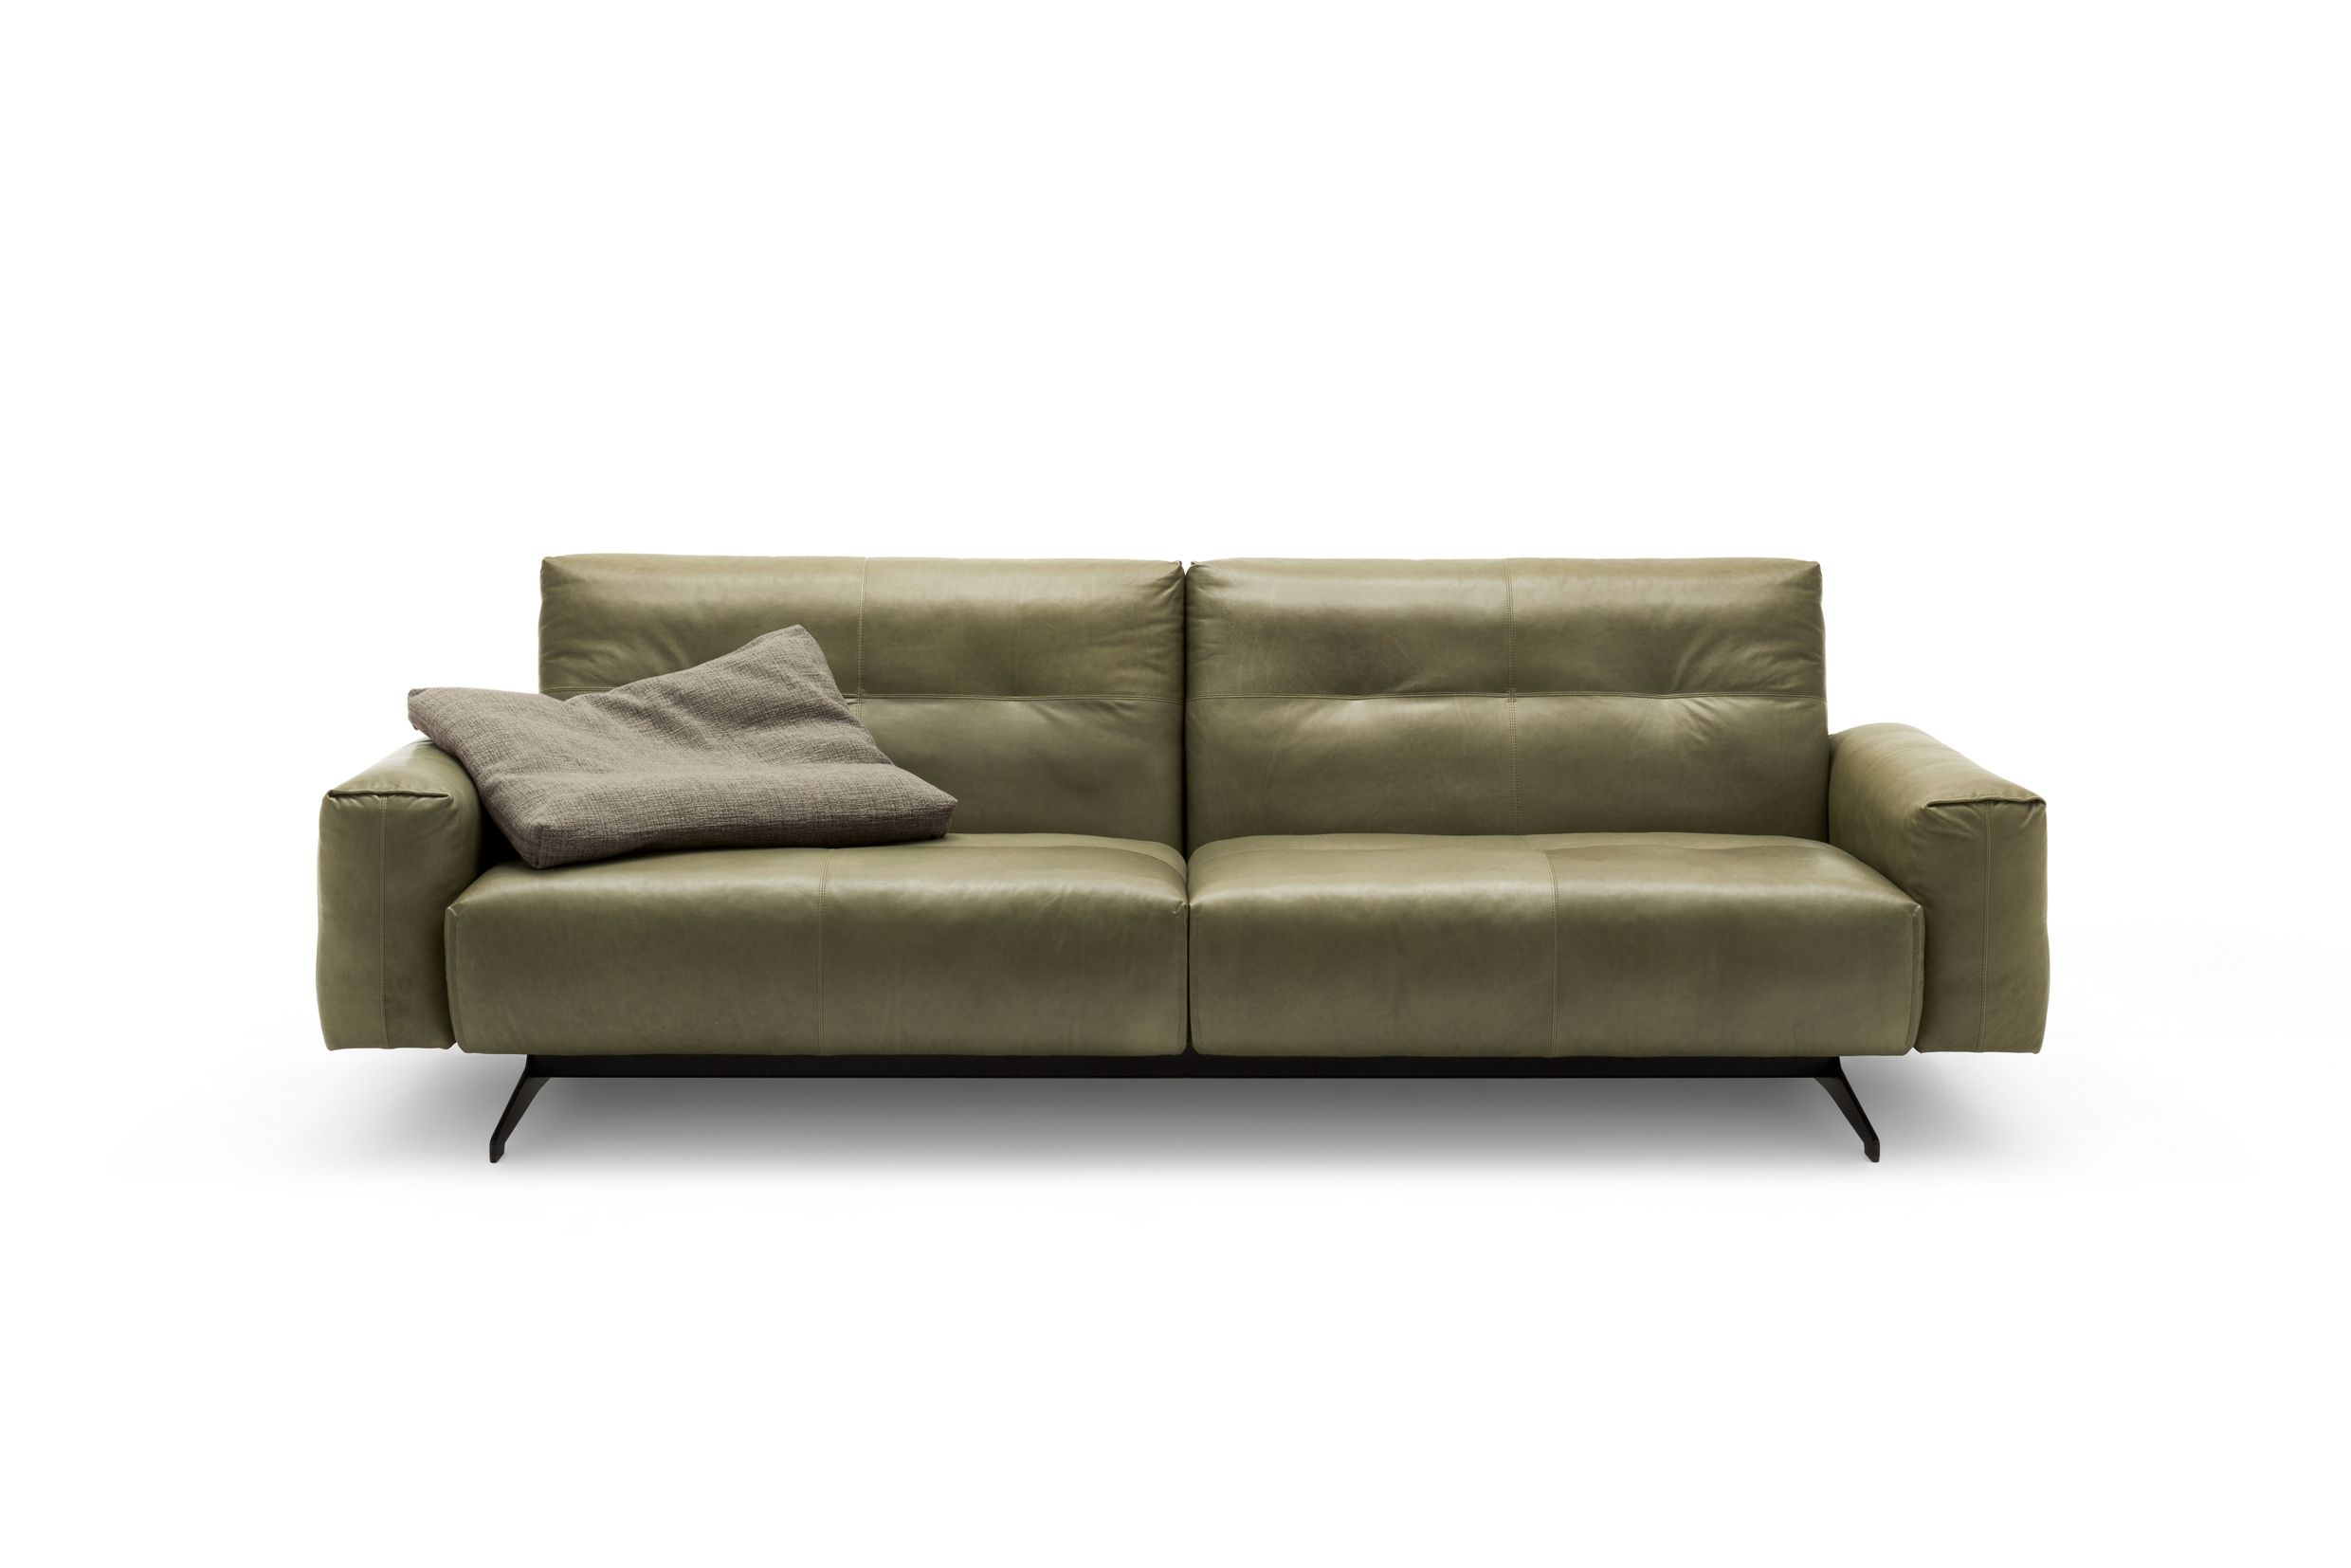 Studio Anise Rolf Benz Tira Sofa modern furniture couch